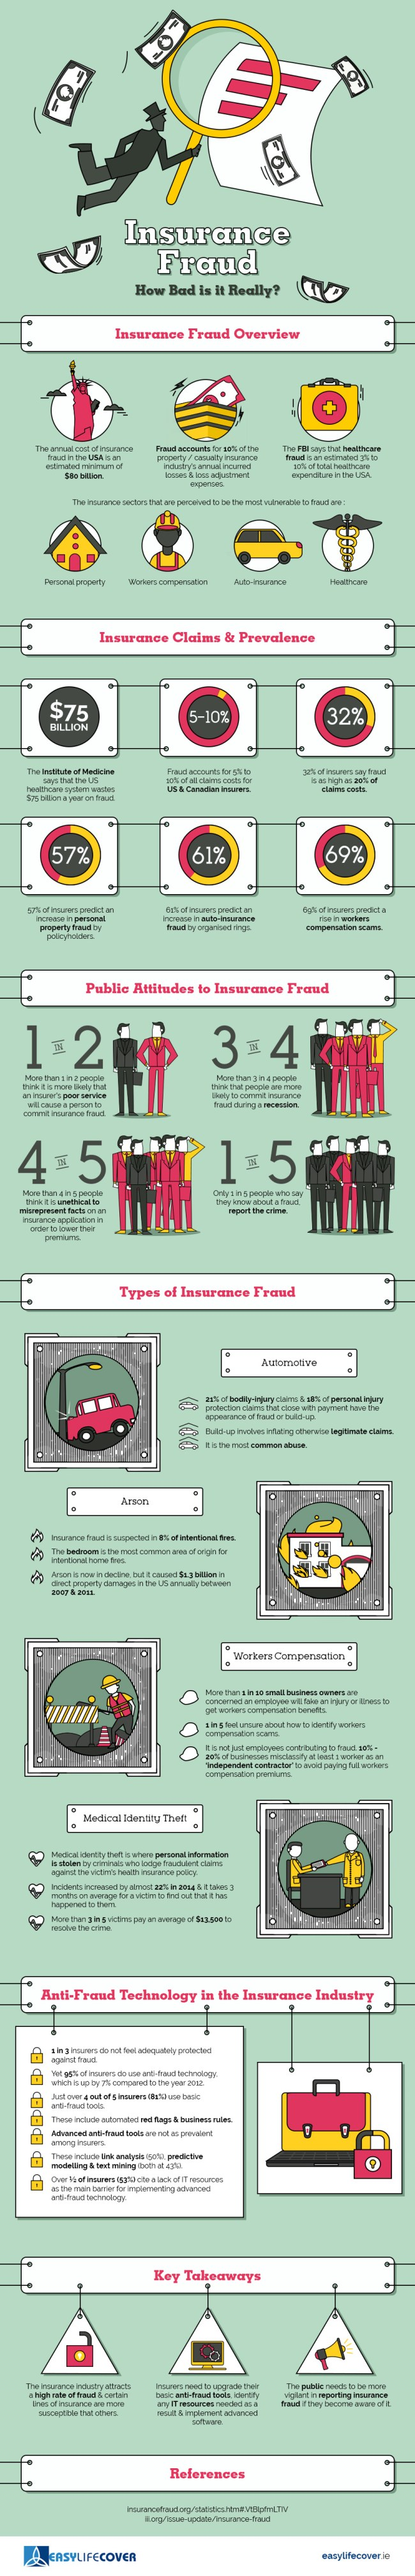 The-World-of-Insurance-Fraud-Infographic